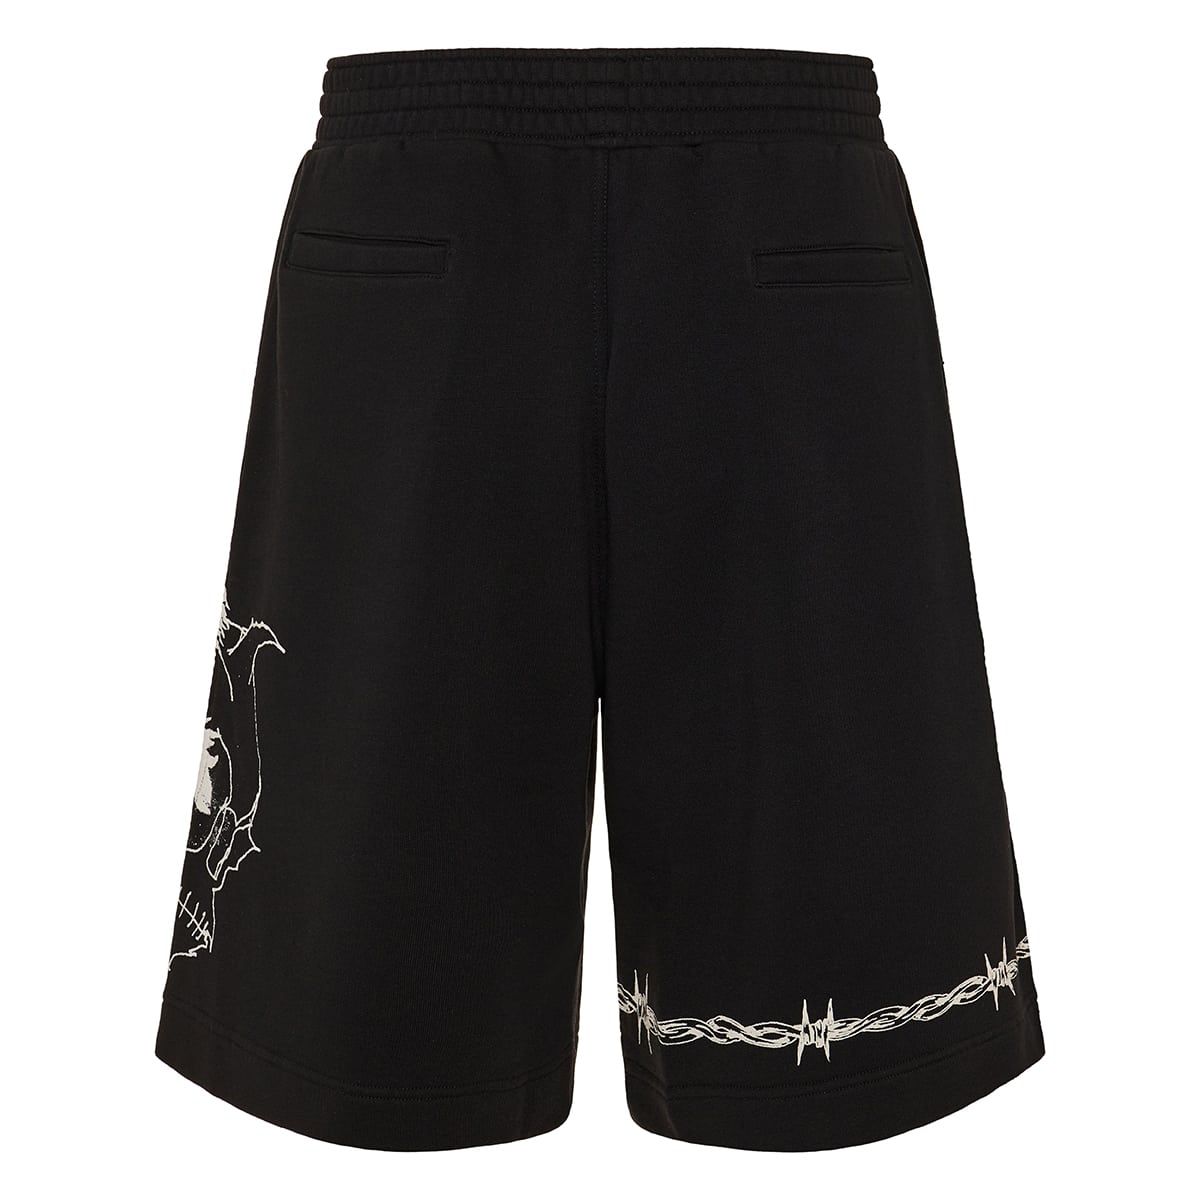 Printed cotton track shorts